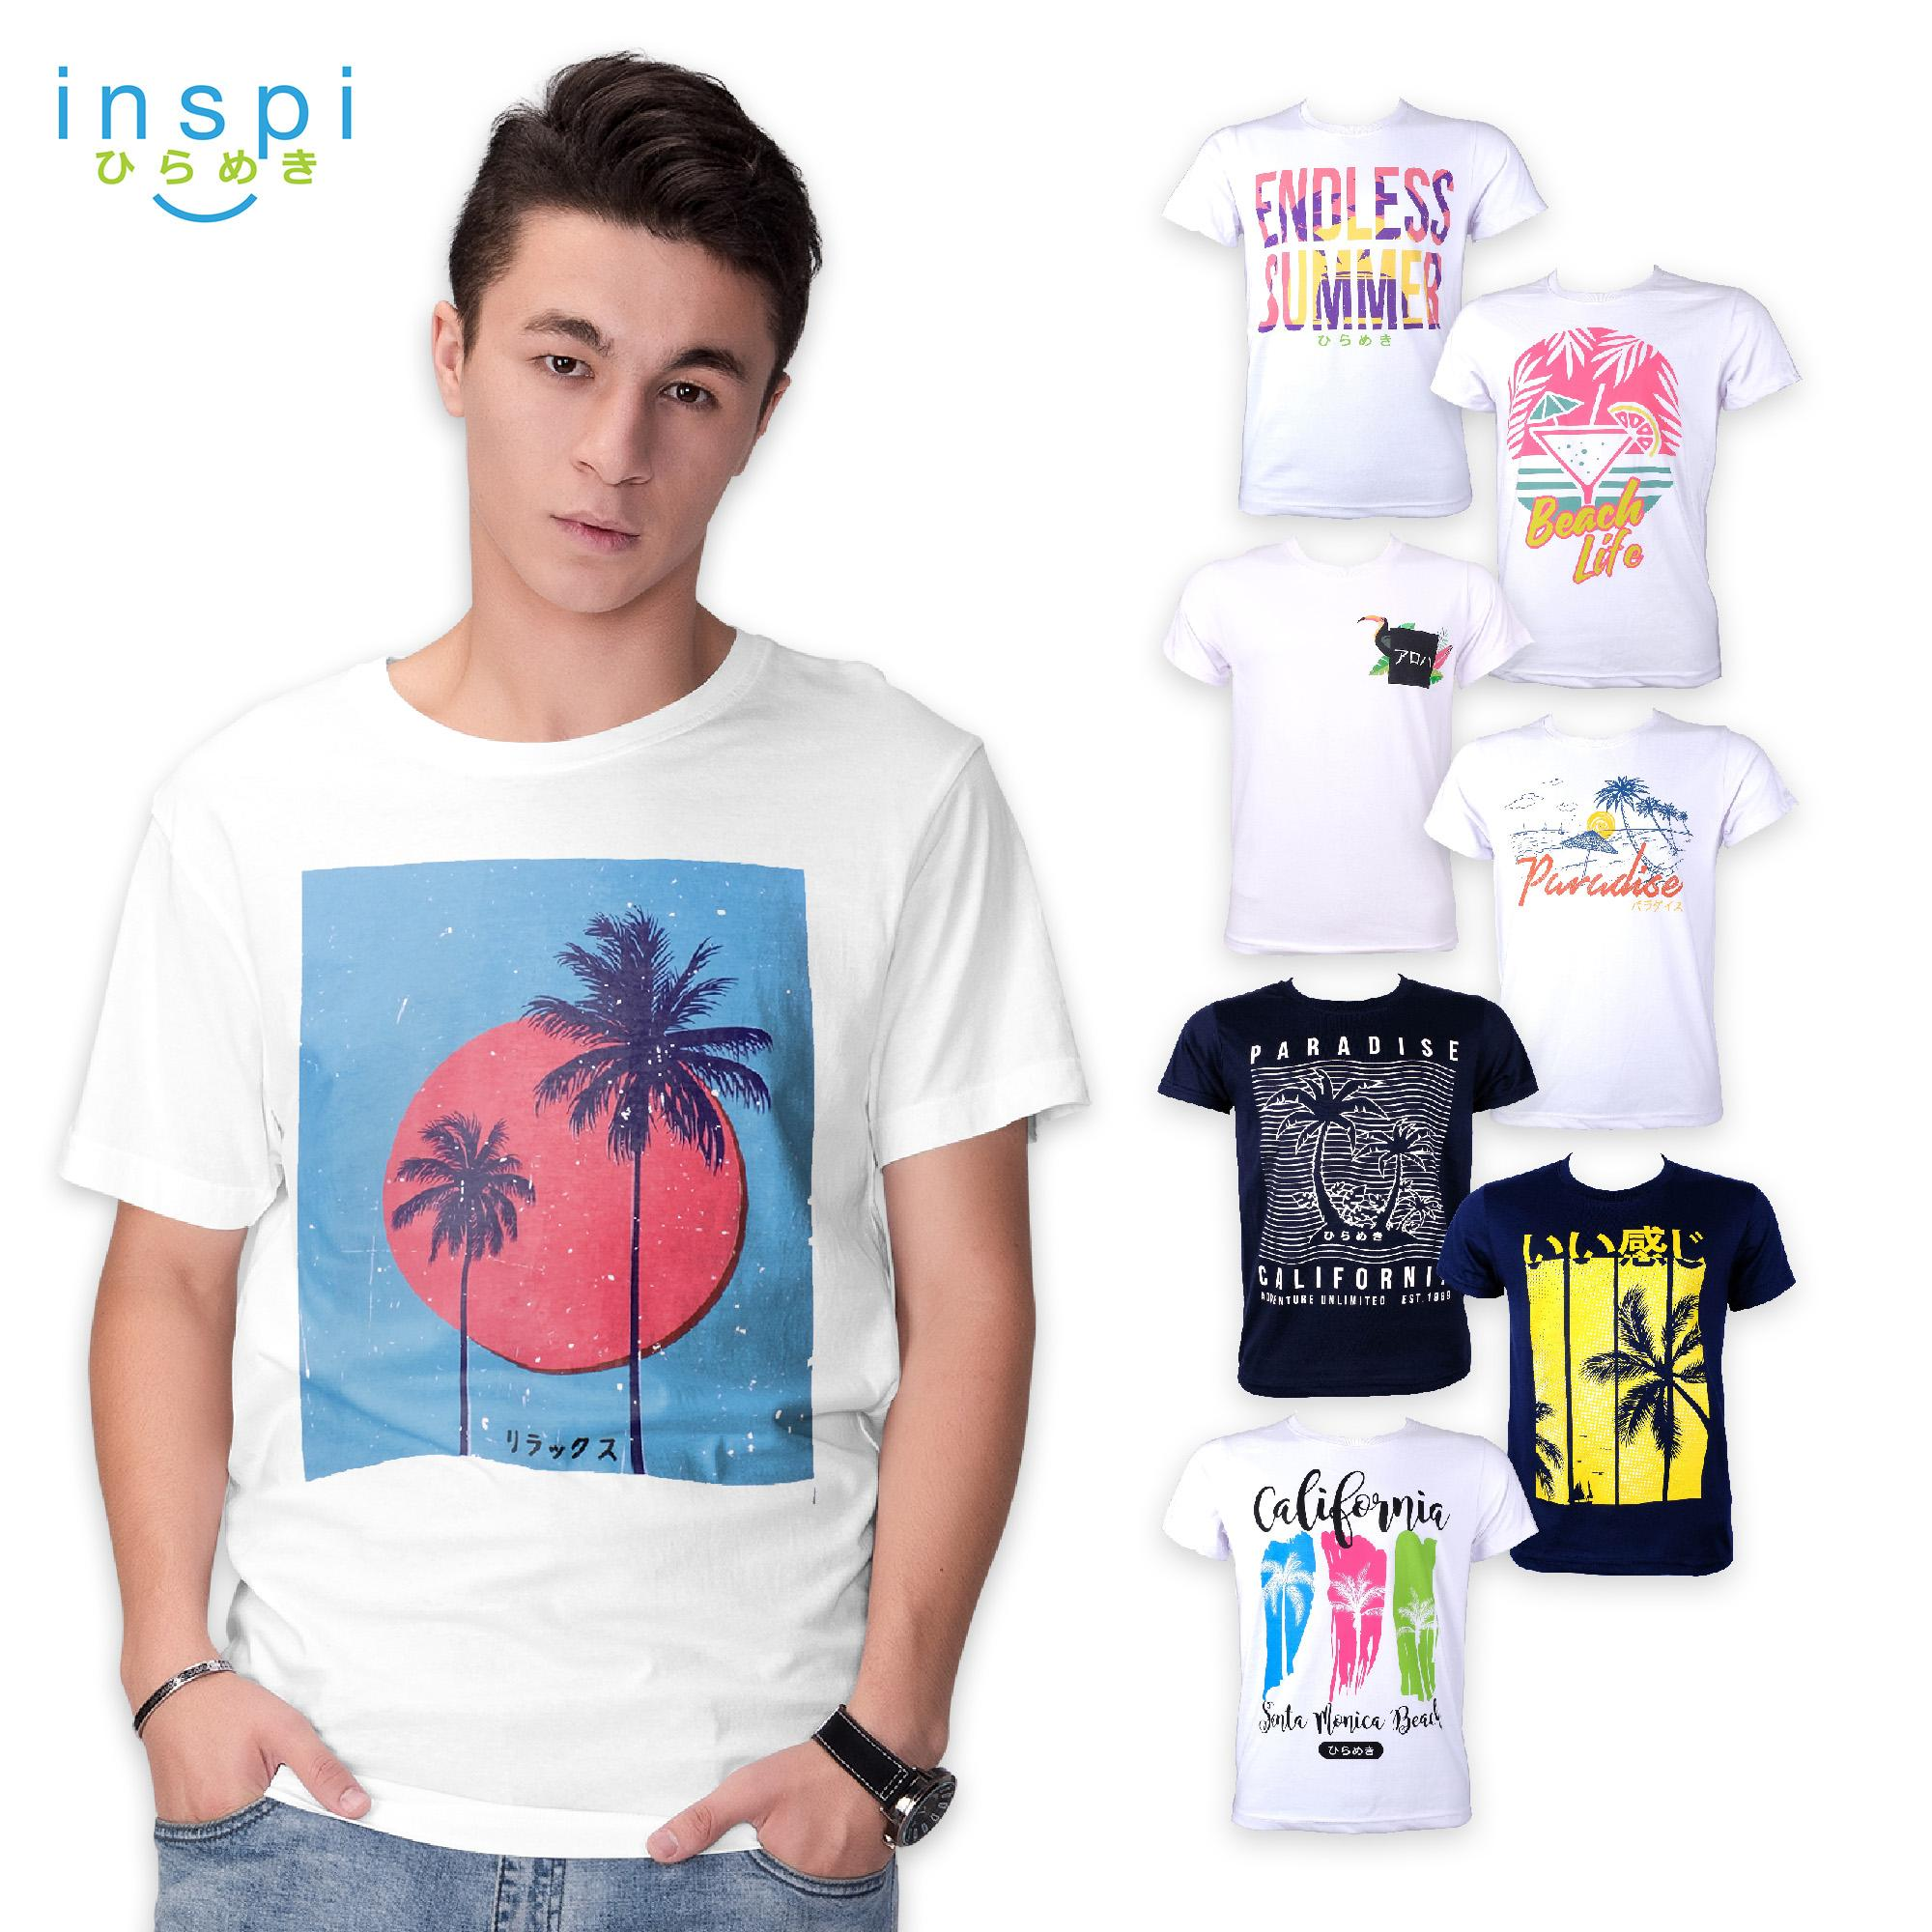 3c343b491583 INSPI Tees Summer Collection tshirt printed graphic tee Mens t shirt shirts  for men tshirts sale